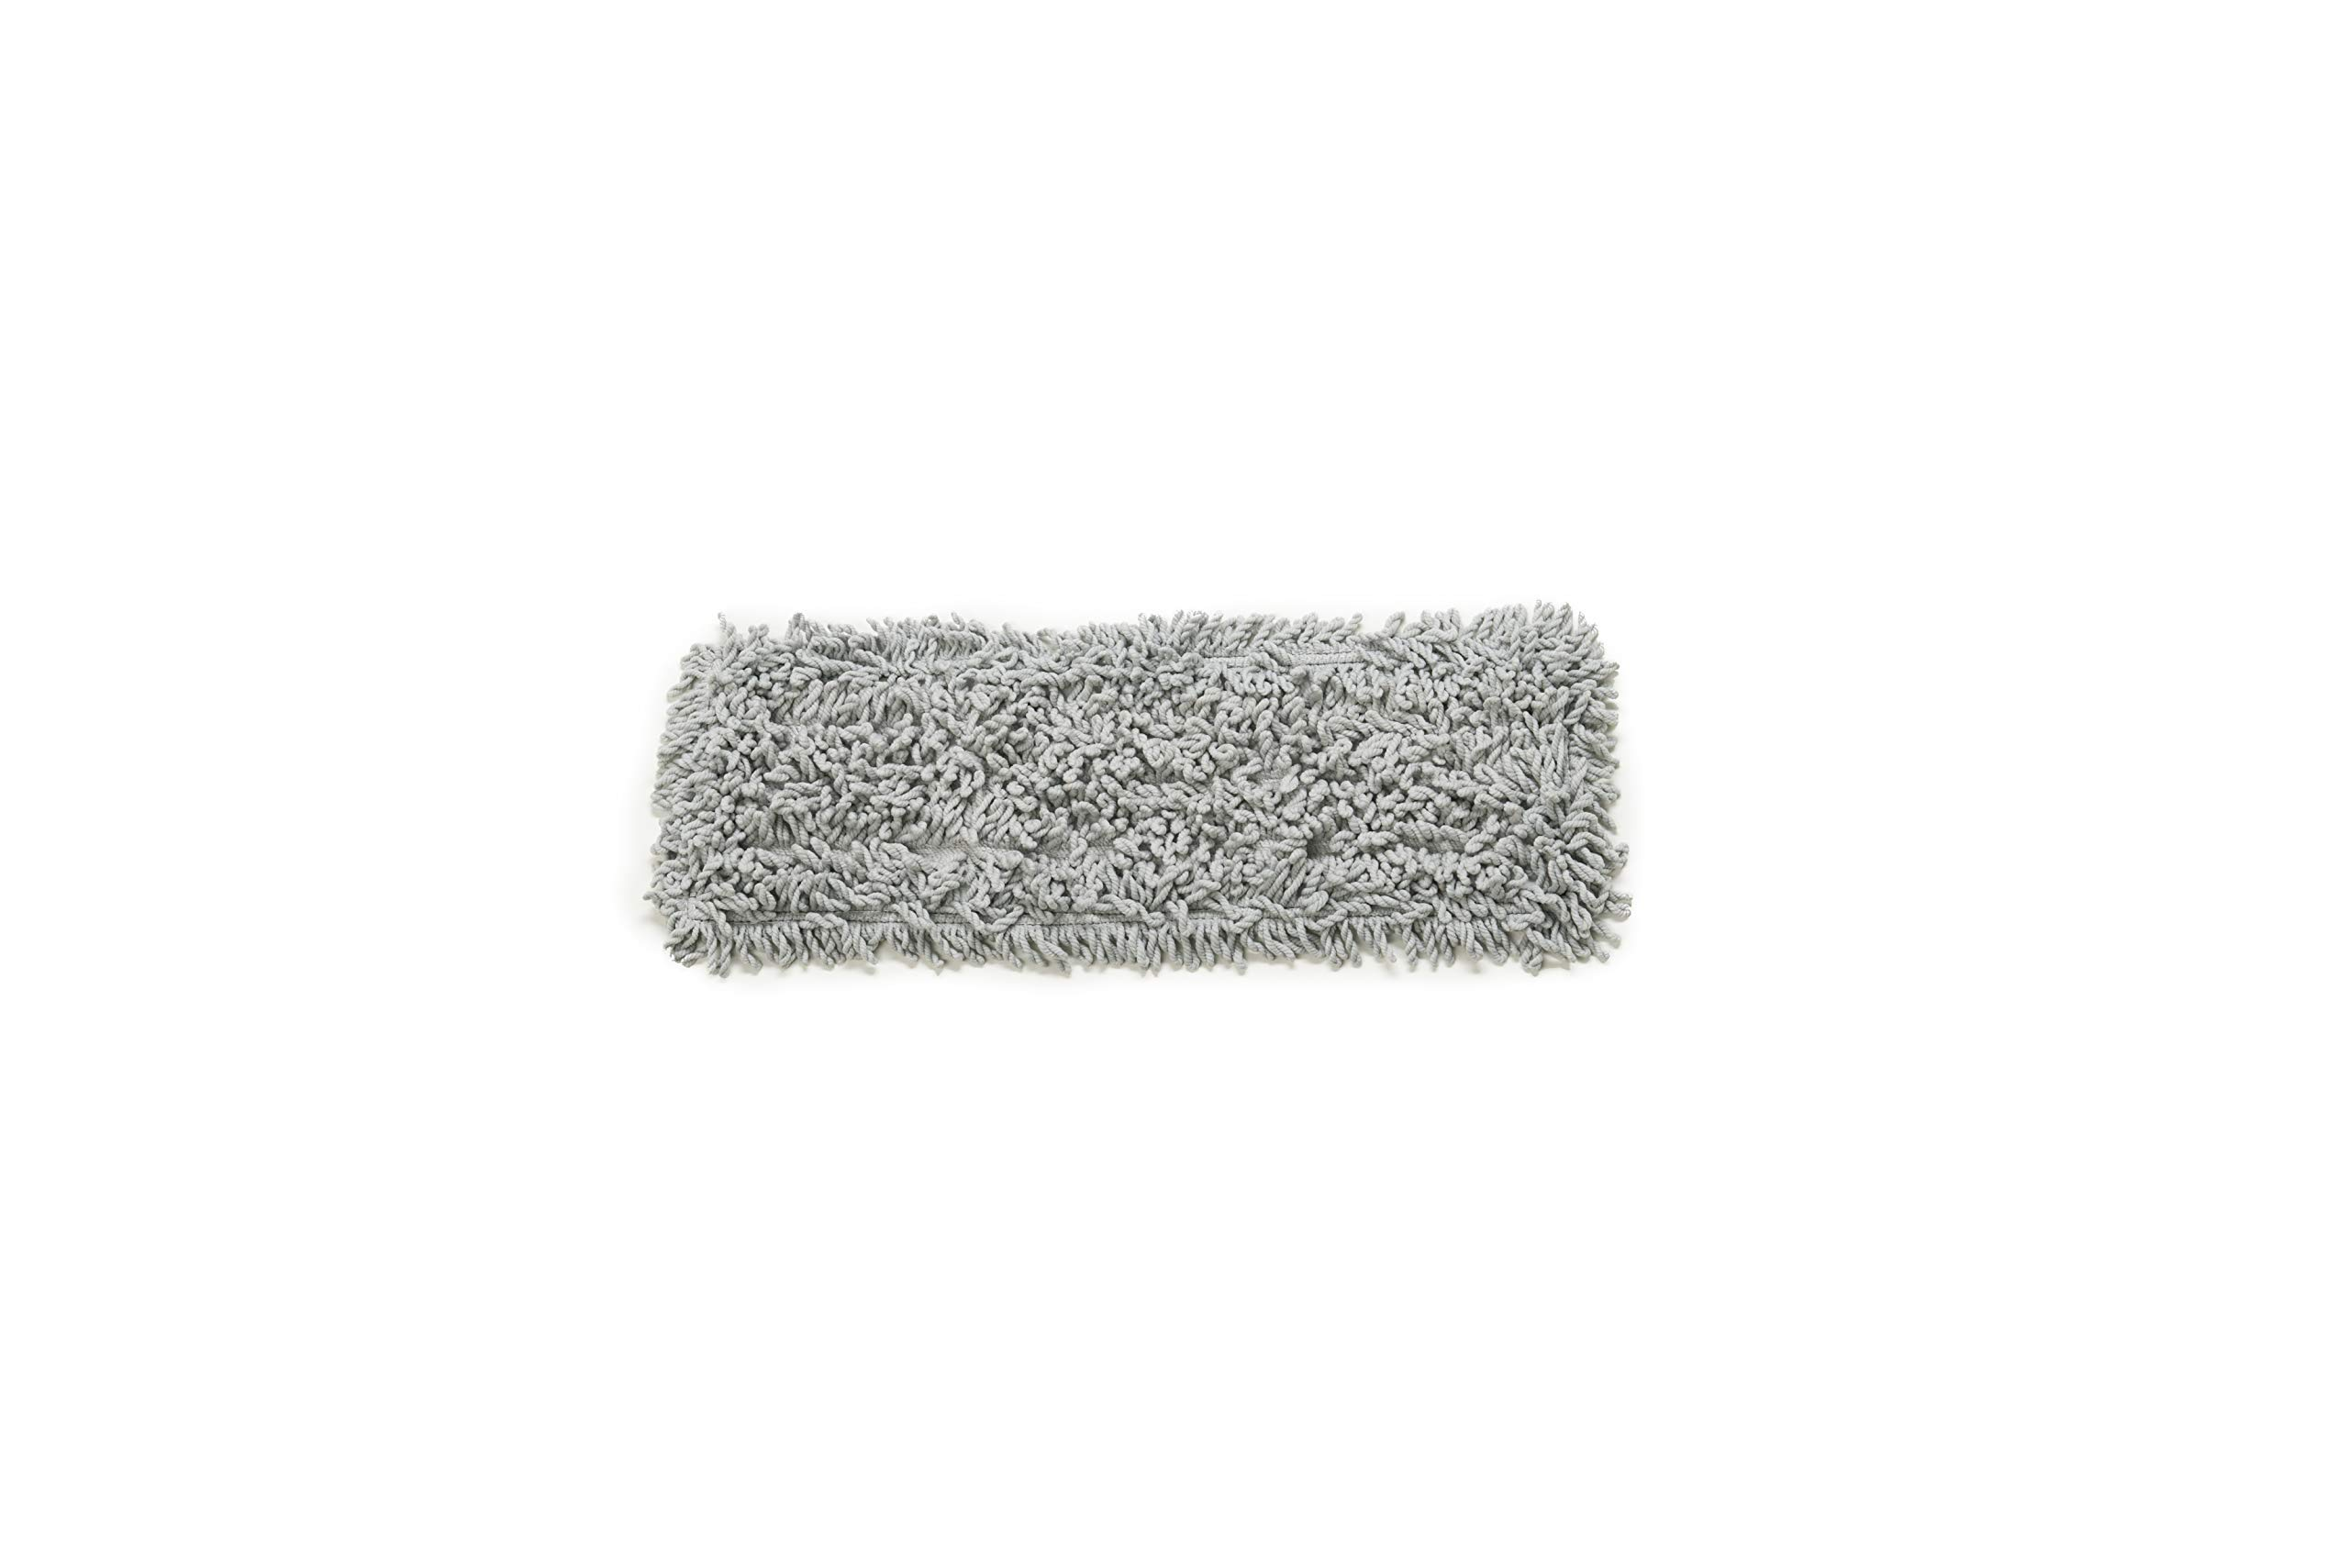 Dust Mop Pad (2 Pads Included) by Suncast Commercial